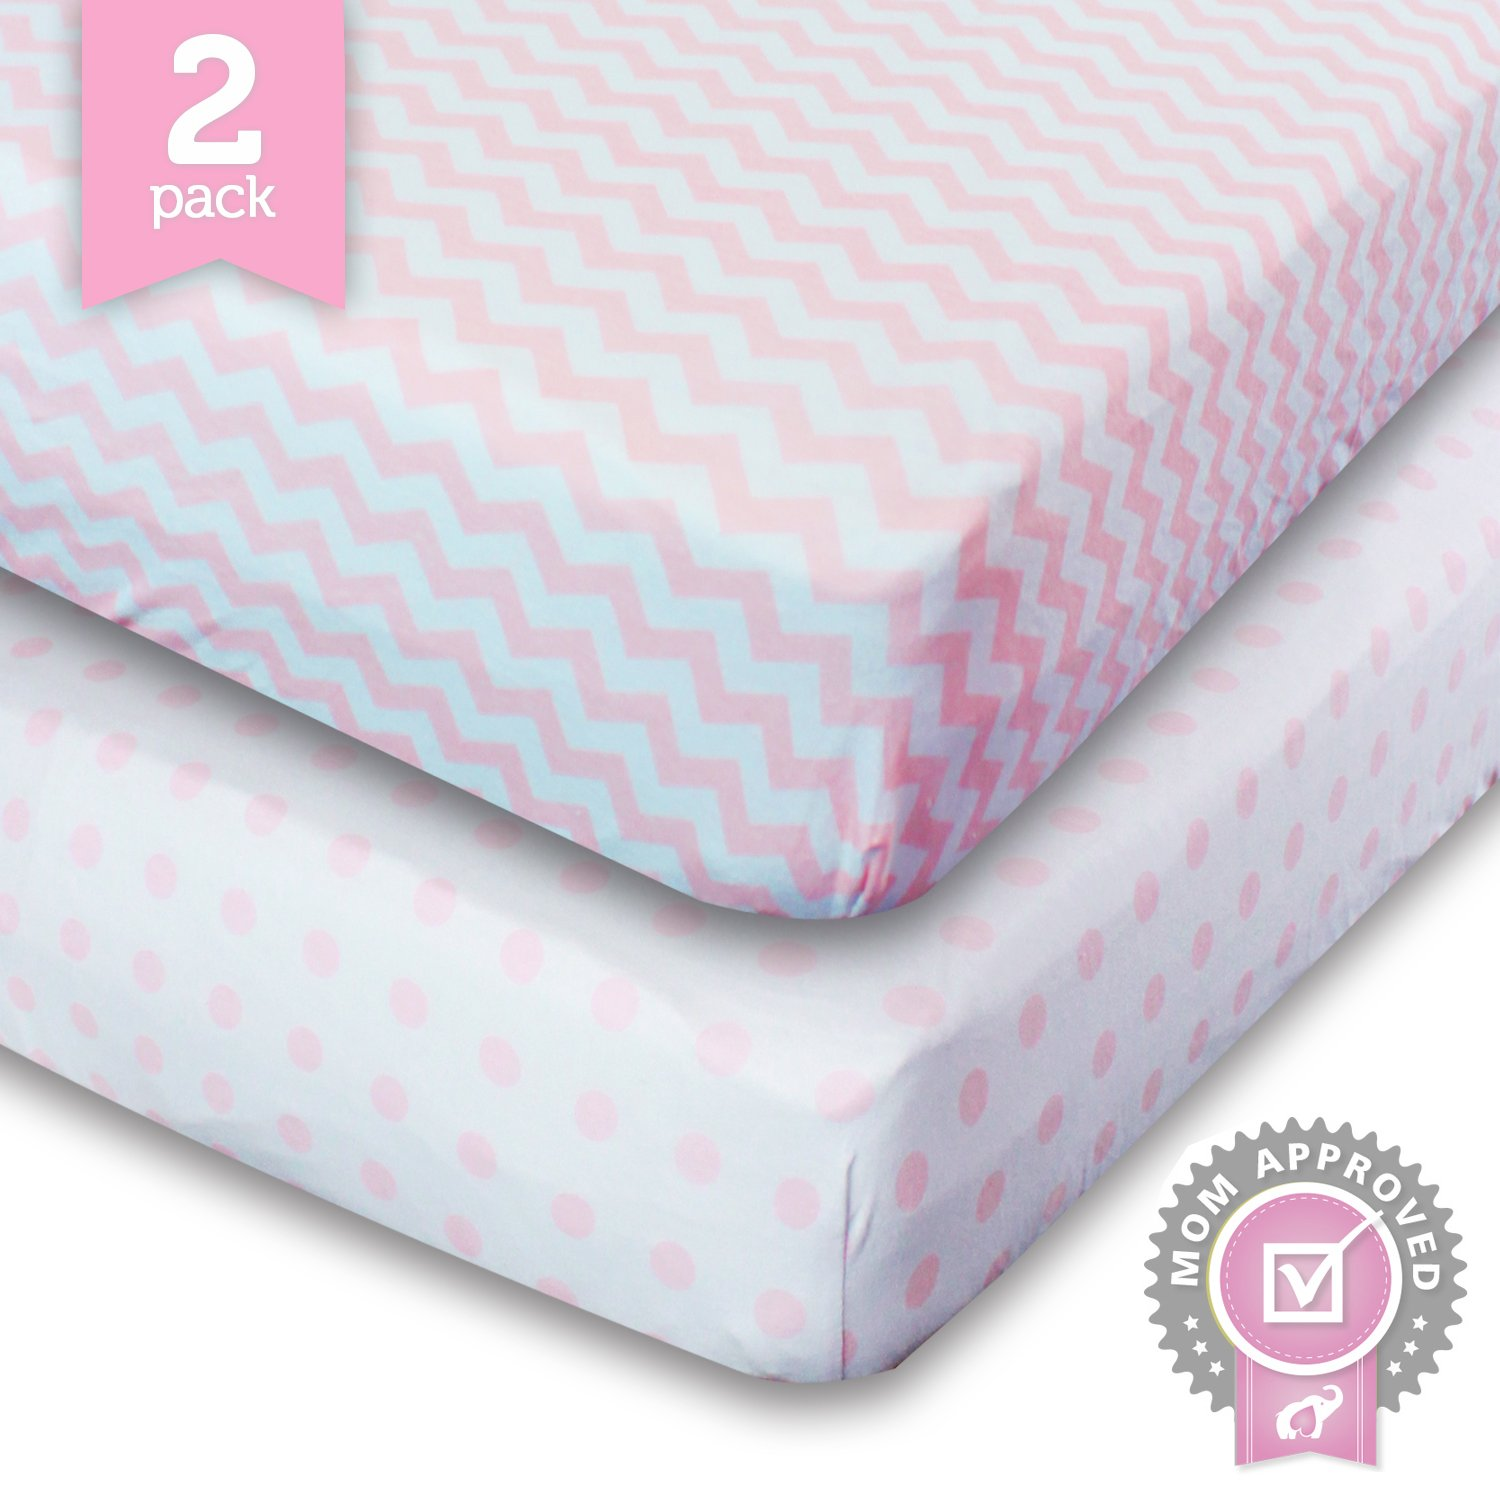 Ziggy Baby Crib Sheet, Toddler Bedding Fitted Jersey Cotton (2 Pack) Chevron, Dot, Pink/White